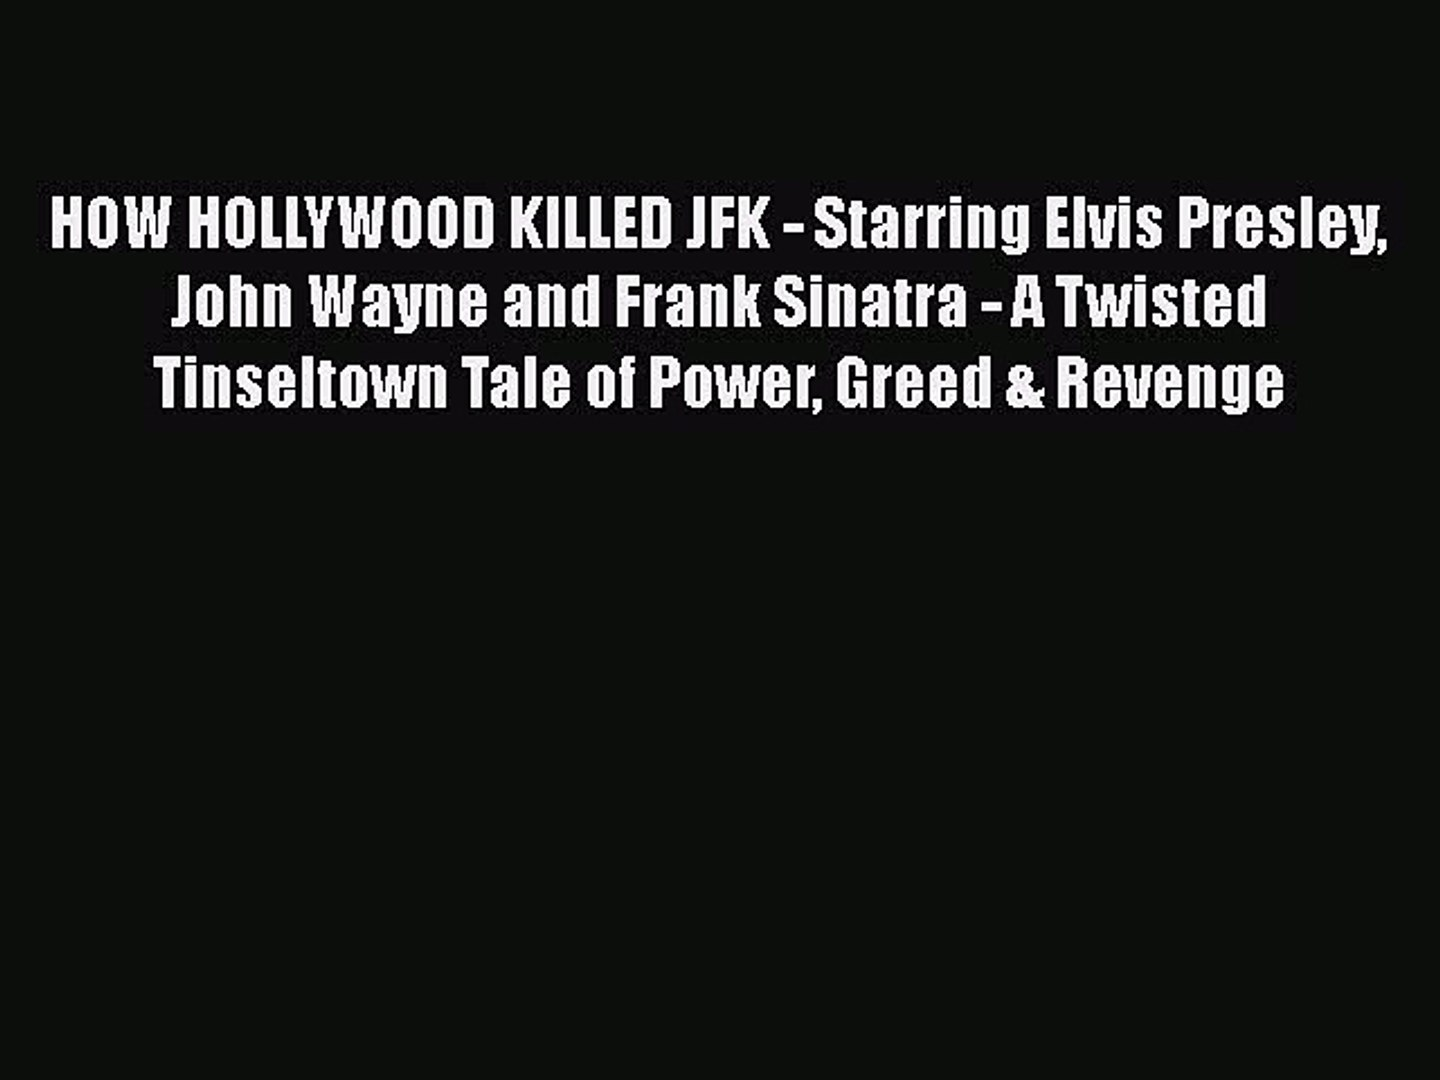 [PDF Download] HOW HOLLYWOOD KILLED JFK - Starring Elvis Presley John Wayne and Frank Sinatra